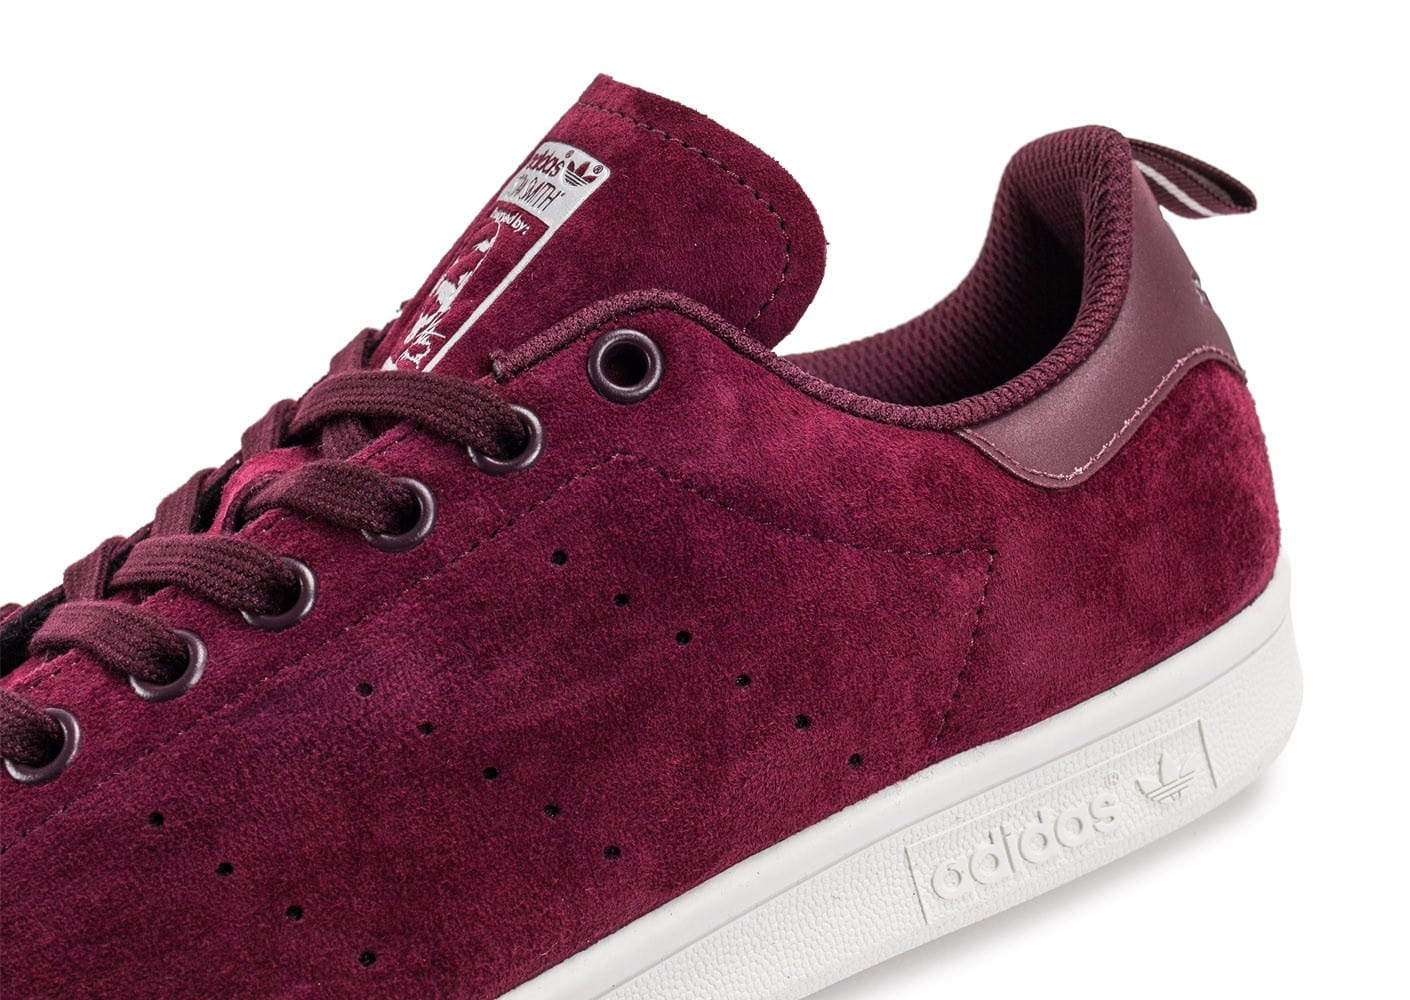 adidas stan smith suede bordeaux chaussures homme chausport. Black Bedroom Furniture Sets. Home Design Ideas